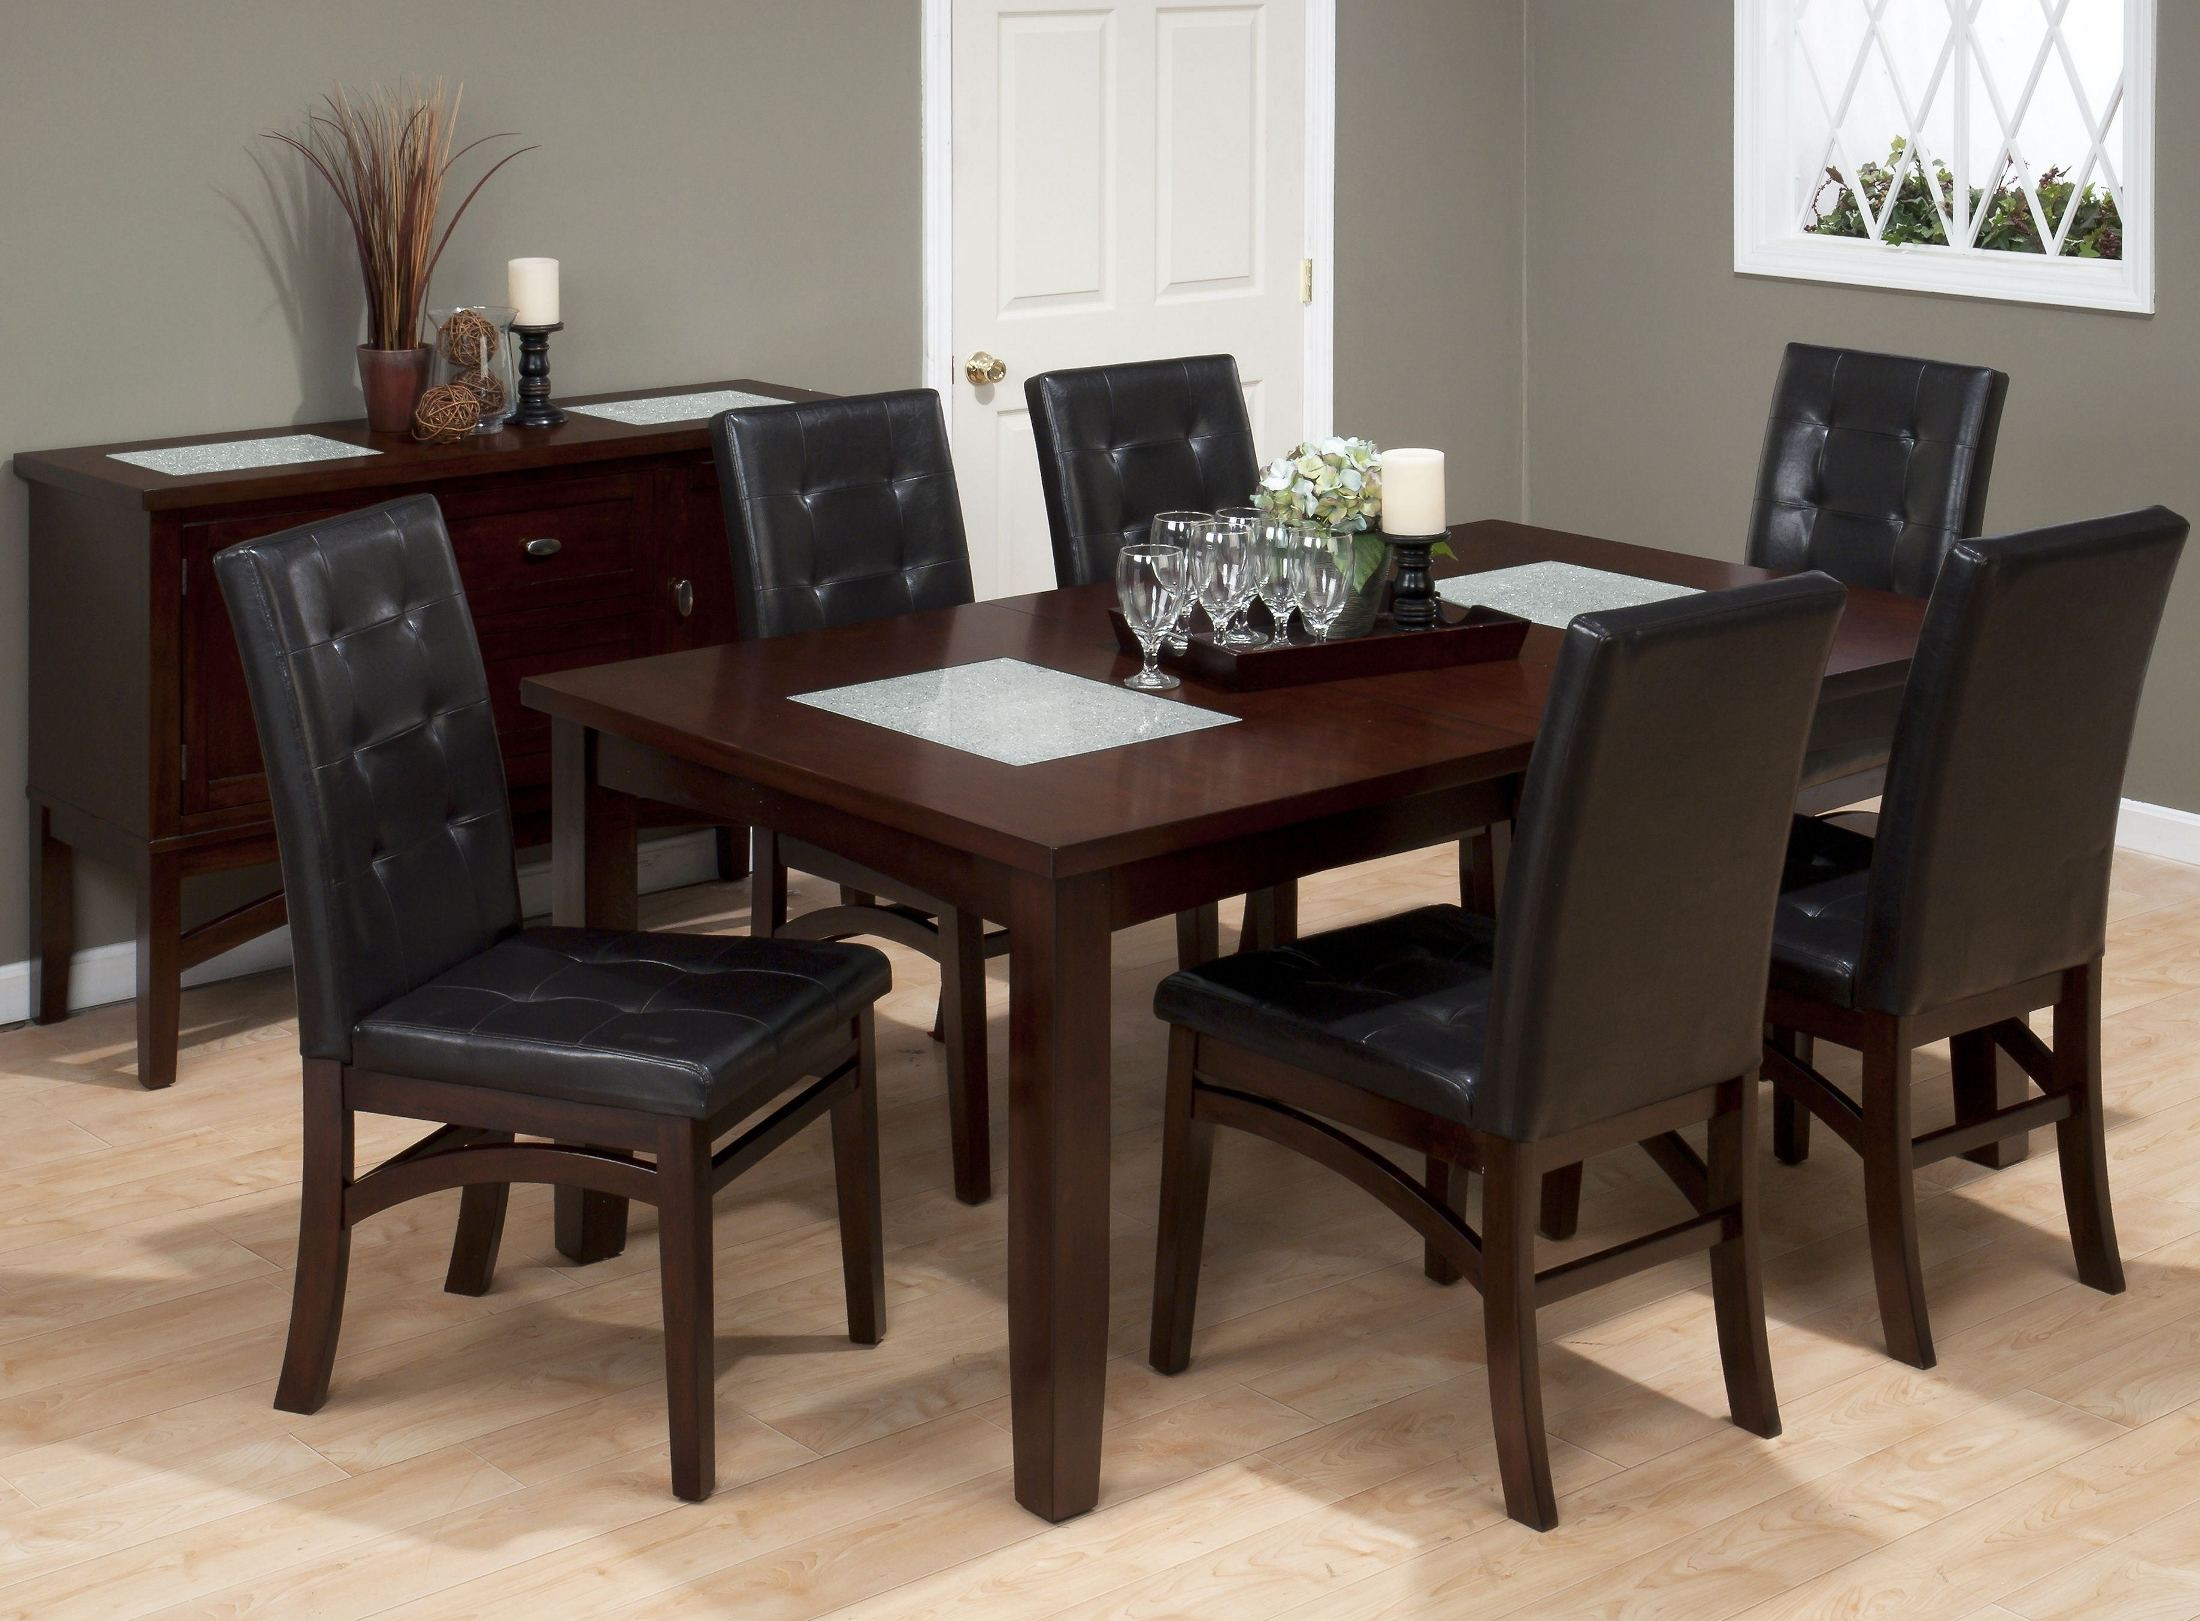 chadwick espresso crackled glass inserts extendable dining room set